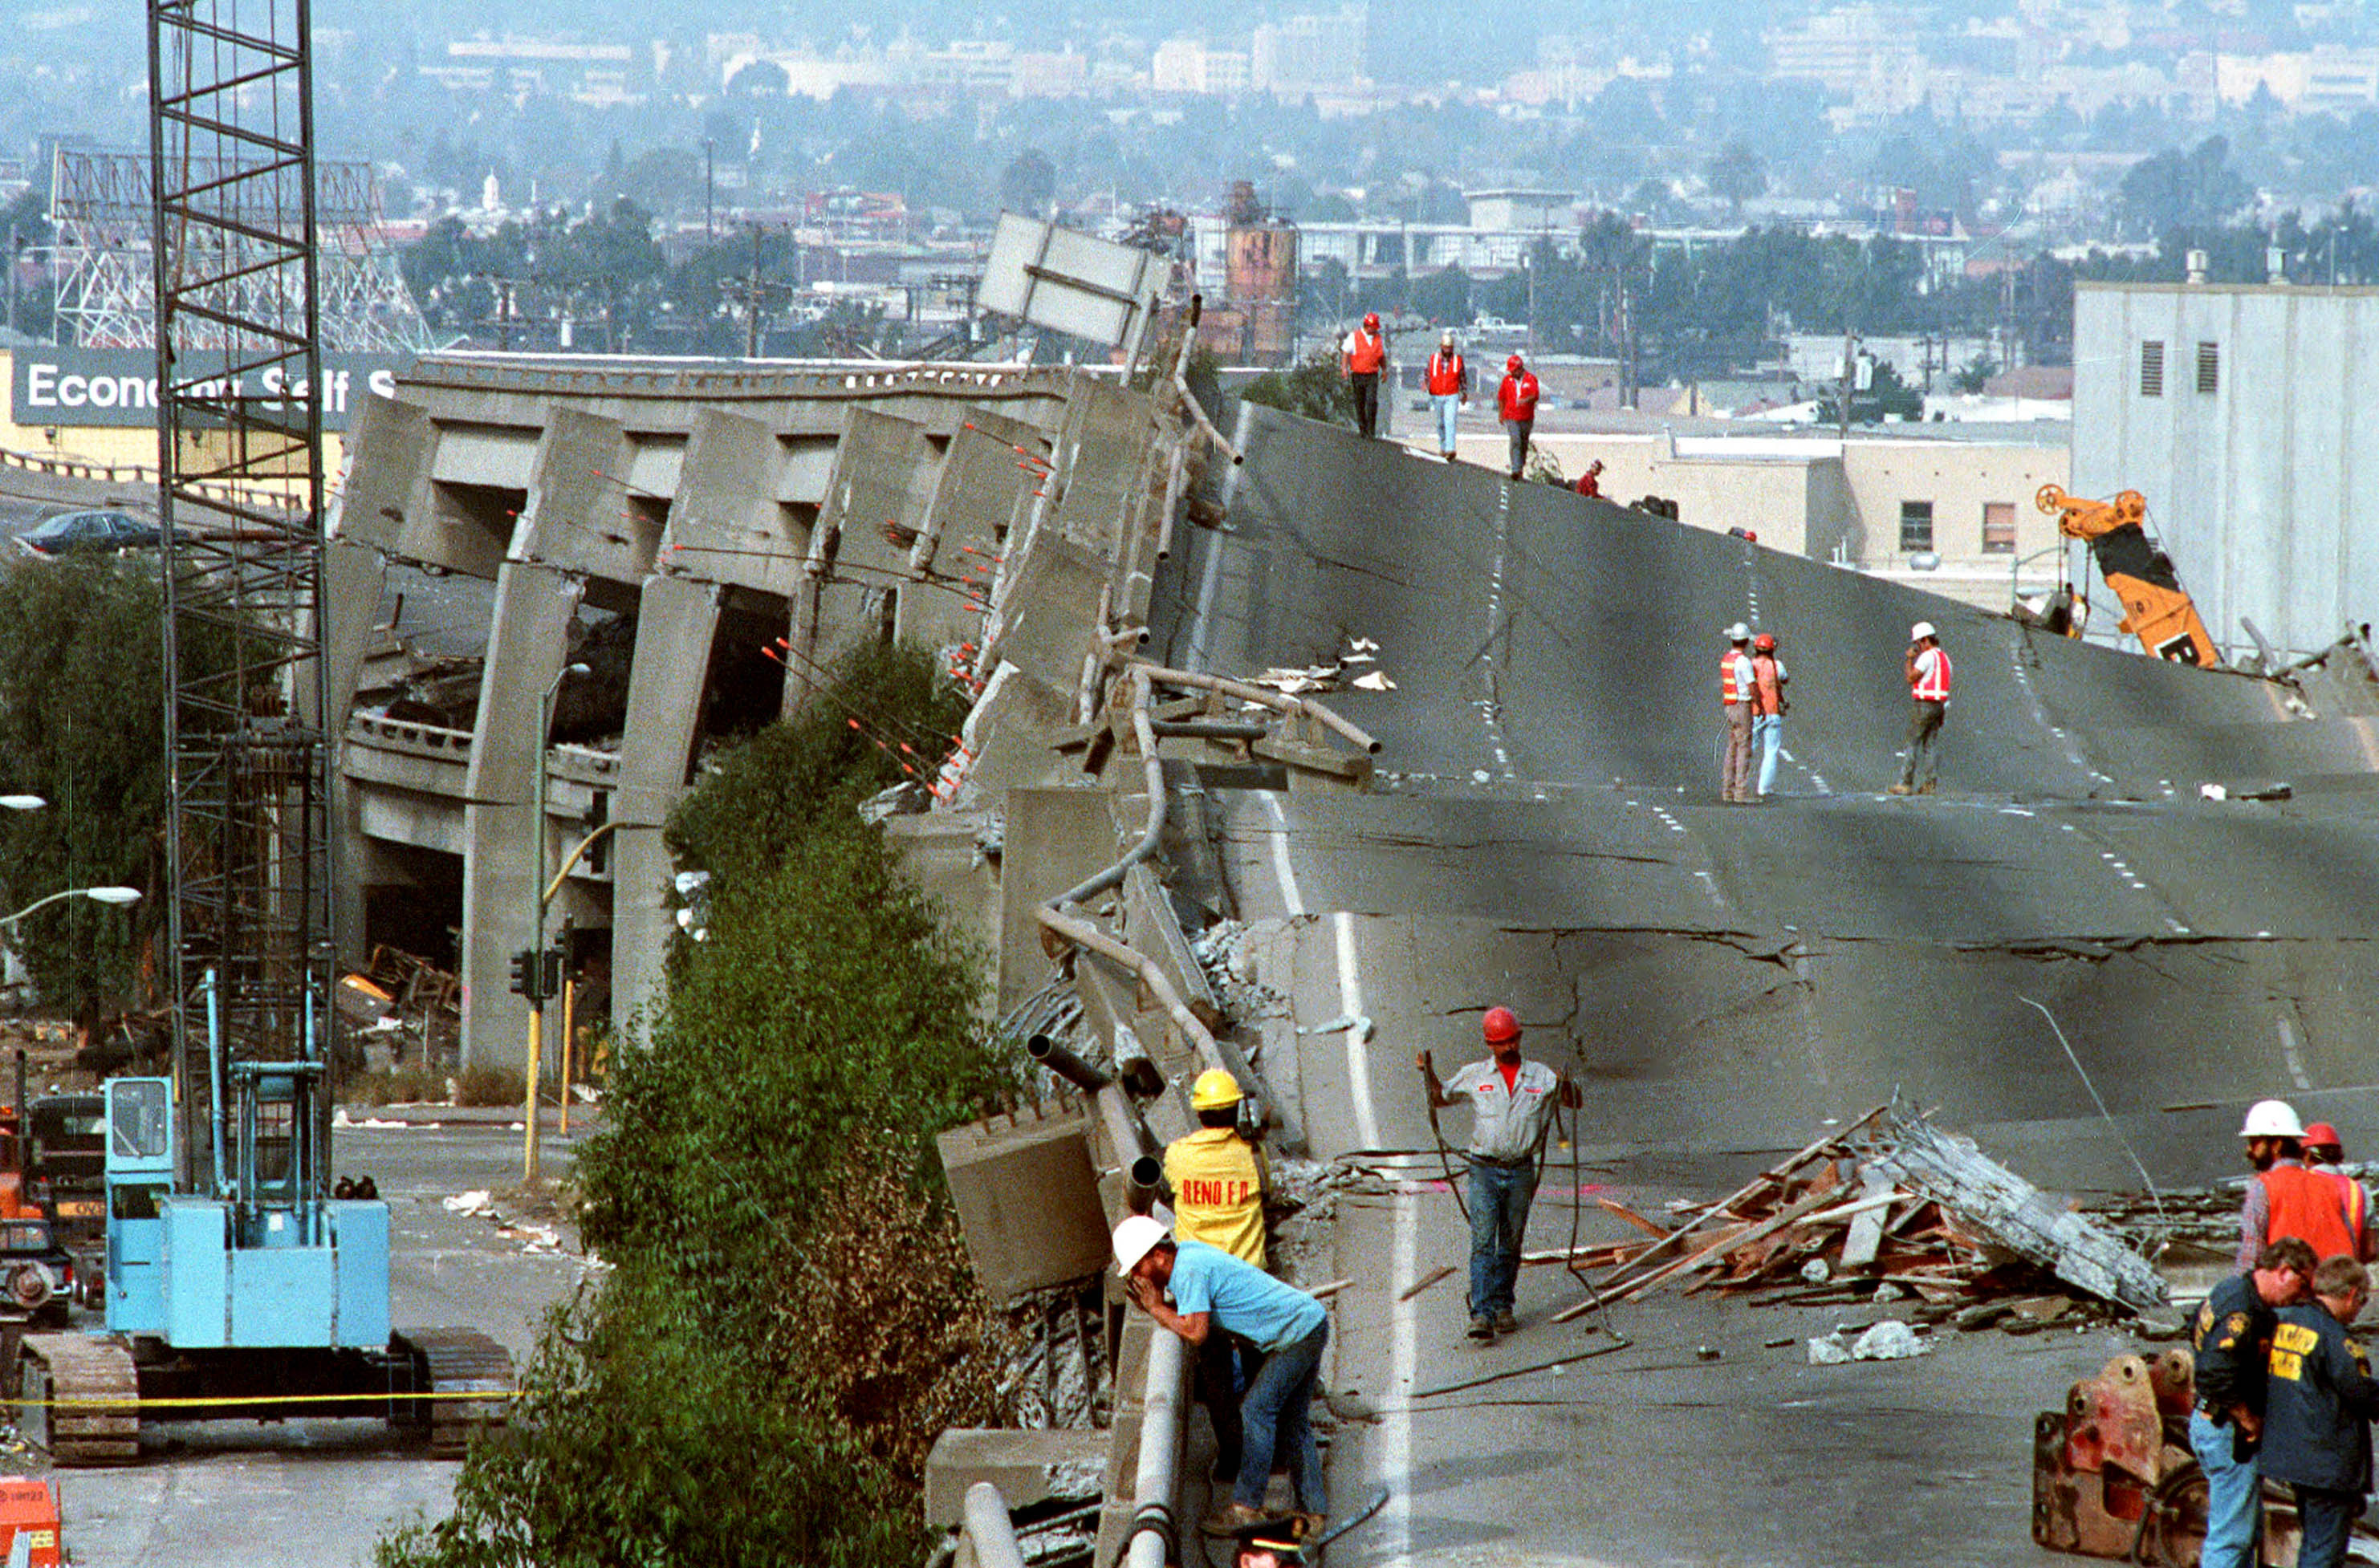 Rescue workers in hardhats walking on a crumbling multiple-leveled freeway.